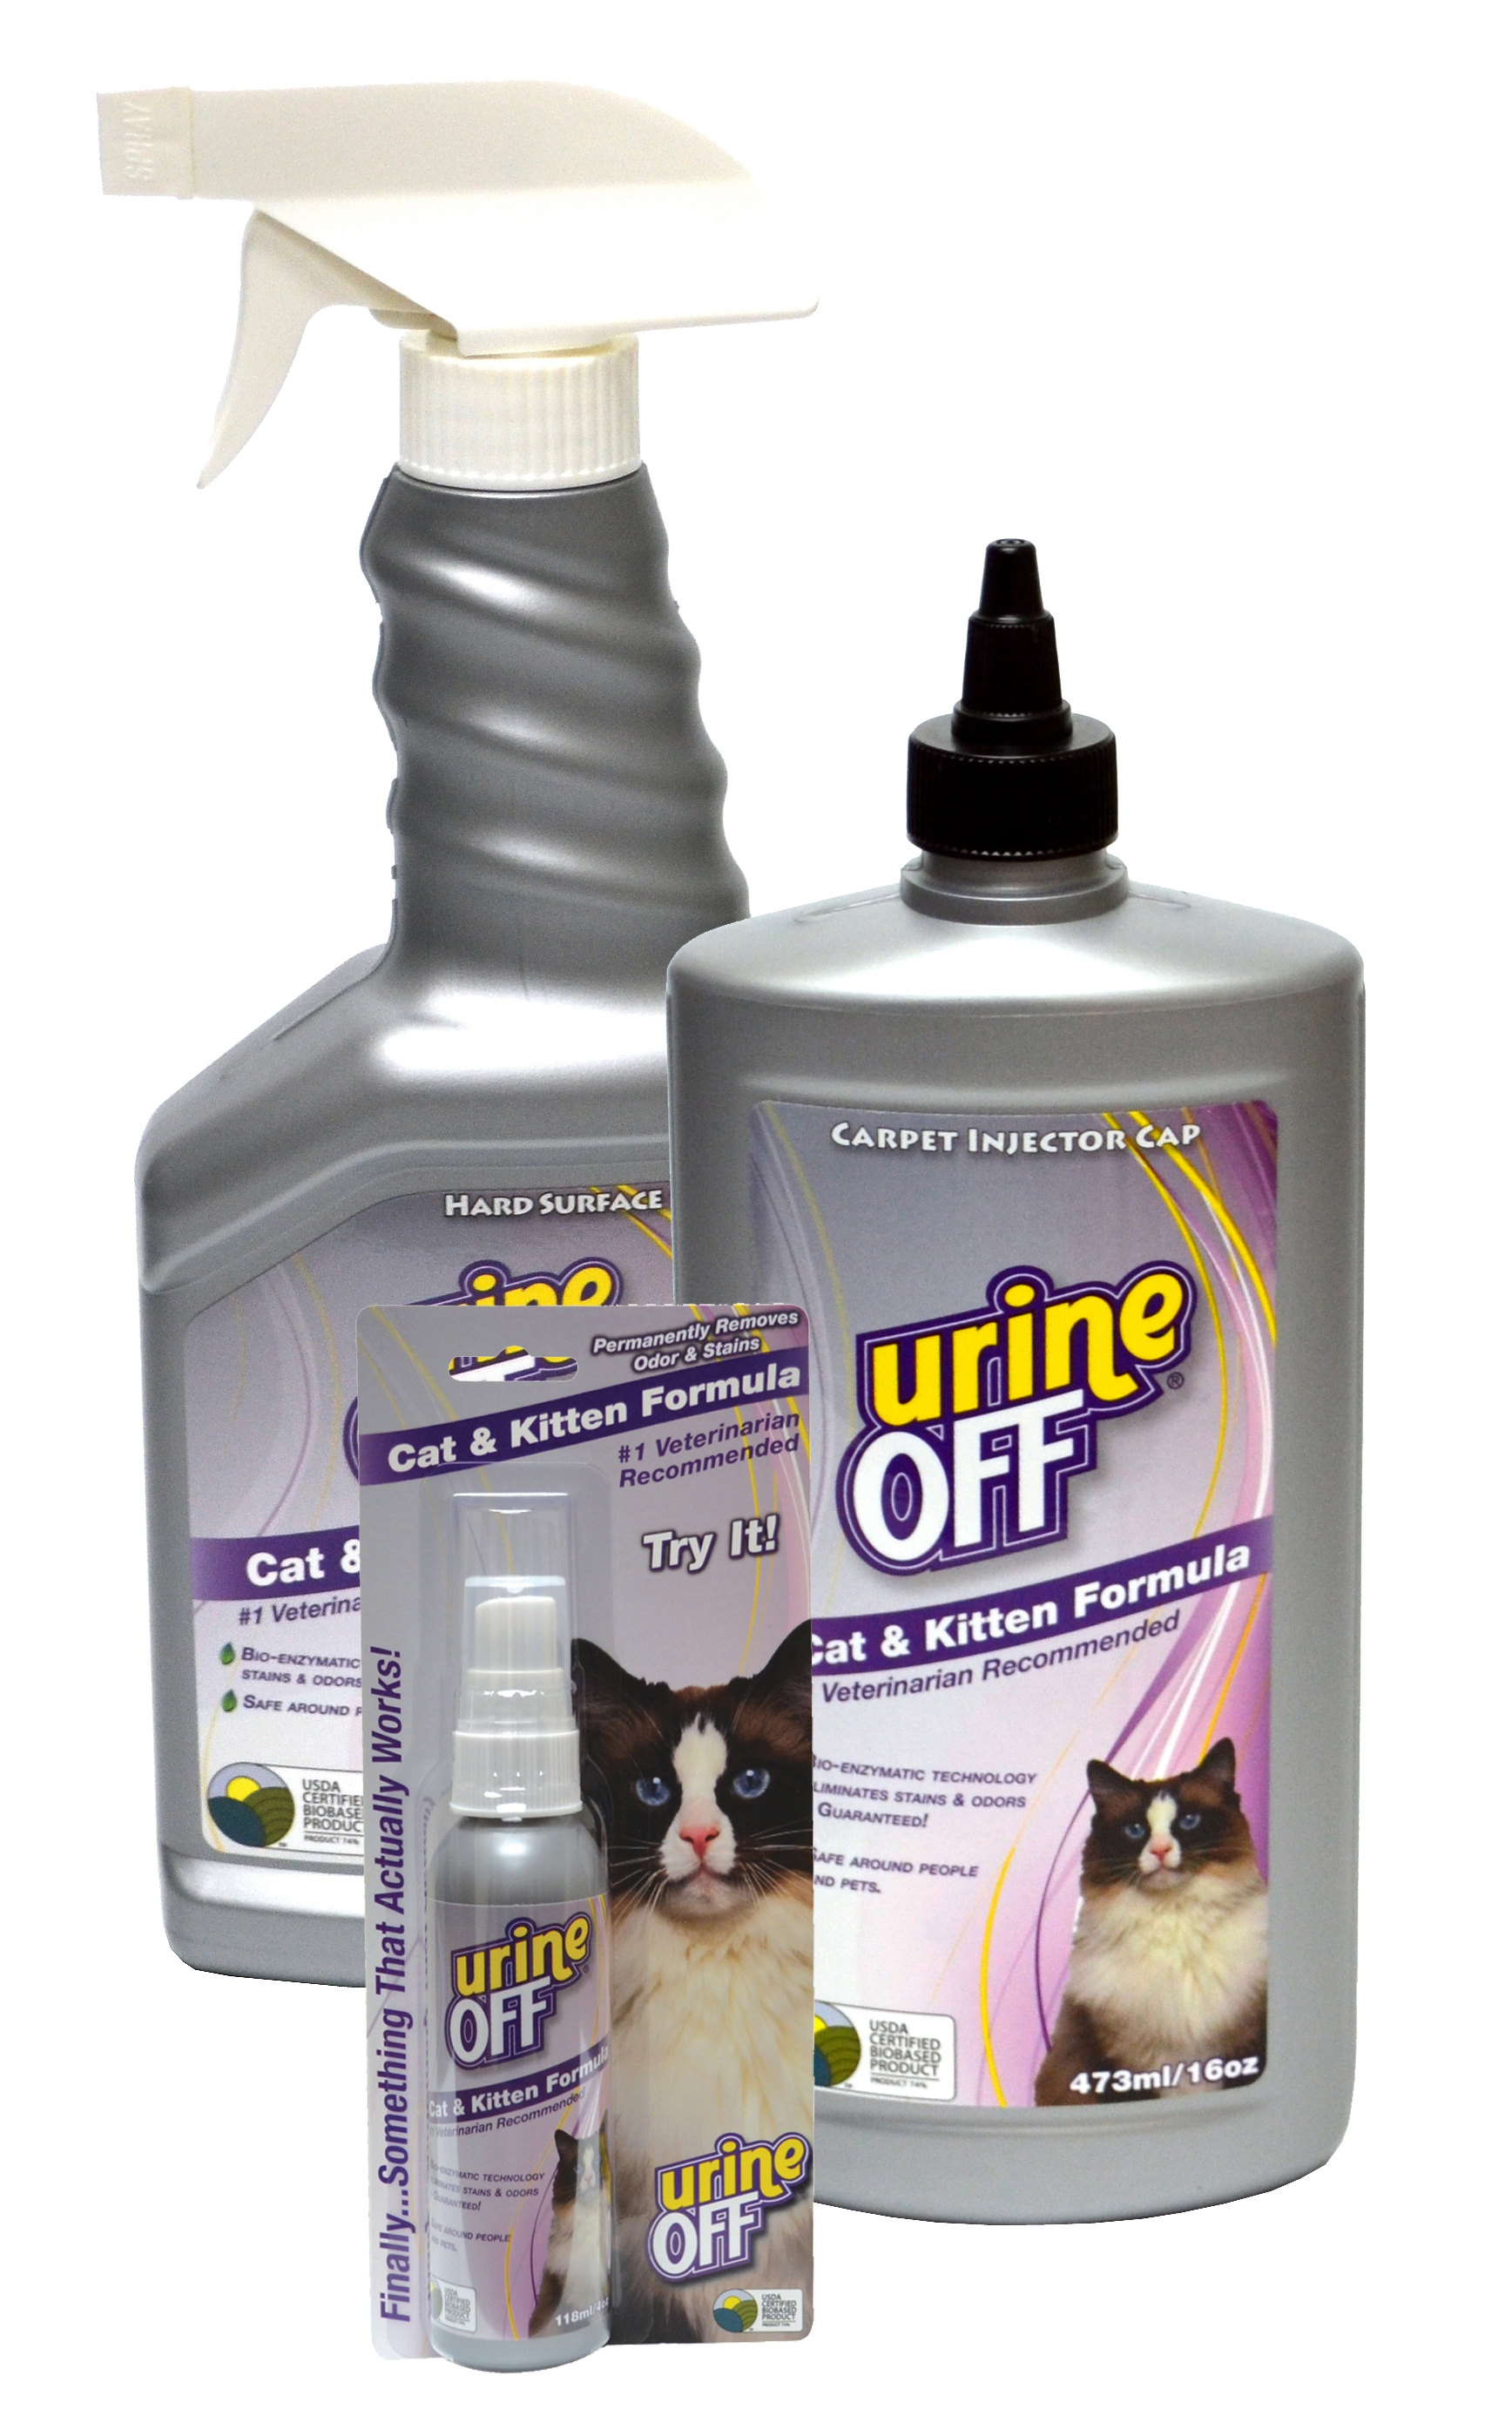 Urine Off Cat & Kitten Injector